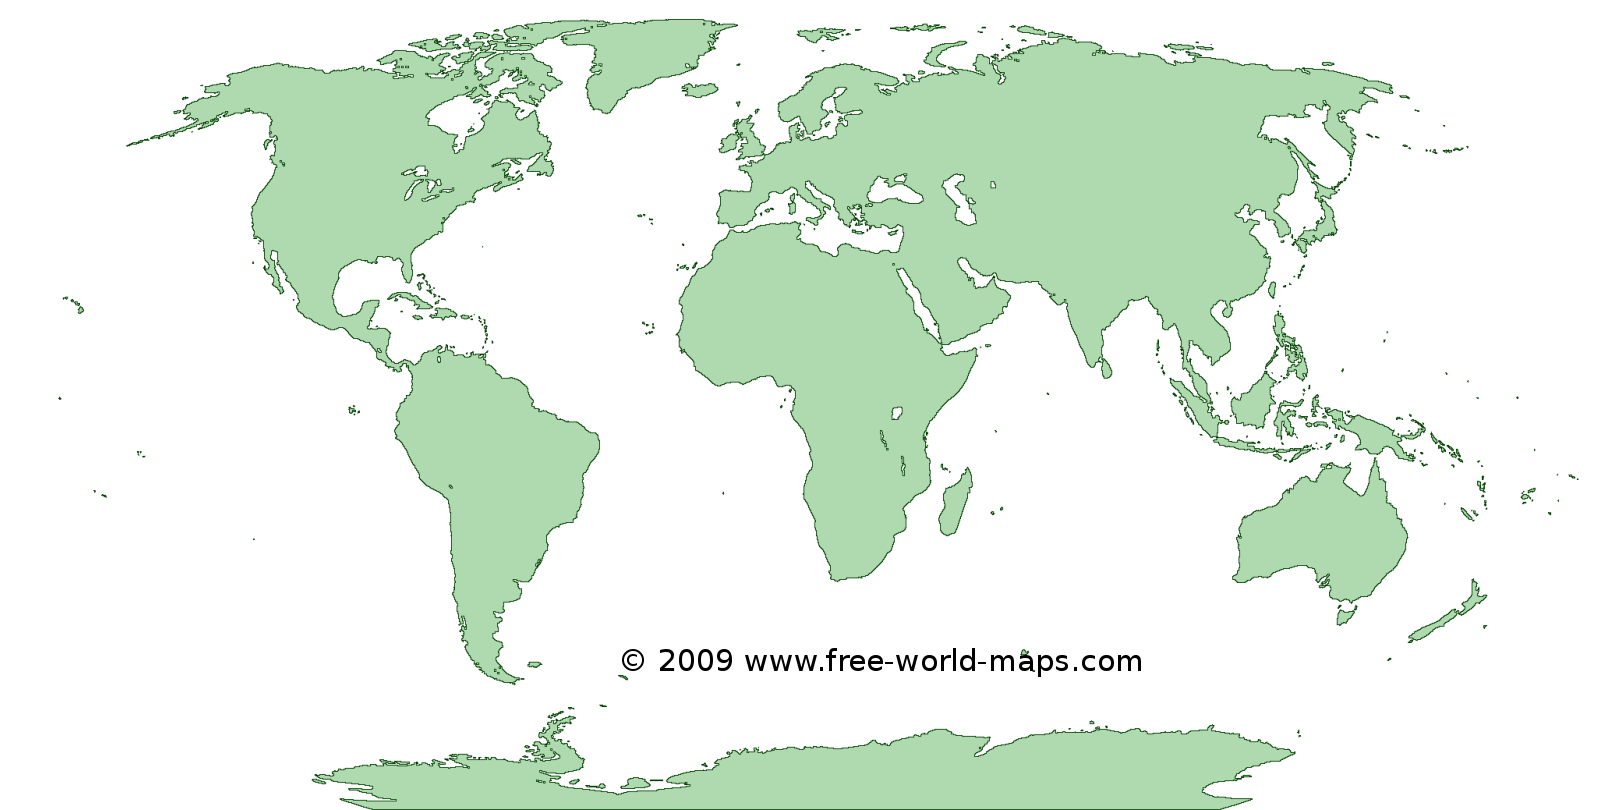 Printable green-transparent blank outline world map C4 | Free world maps